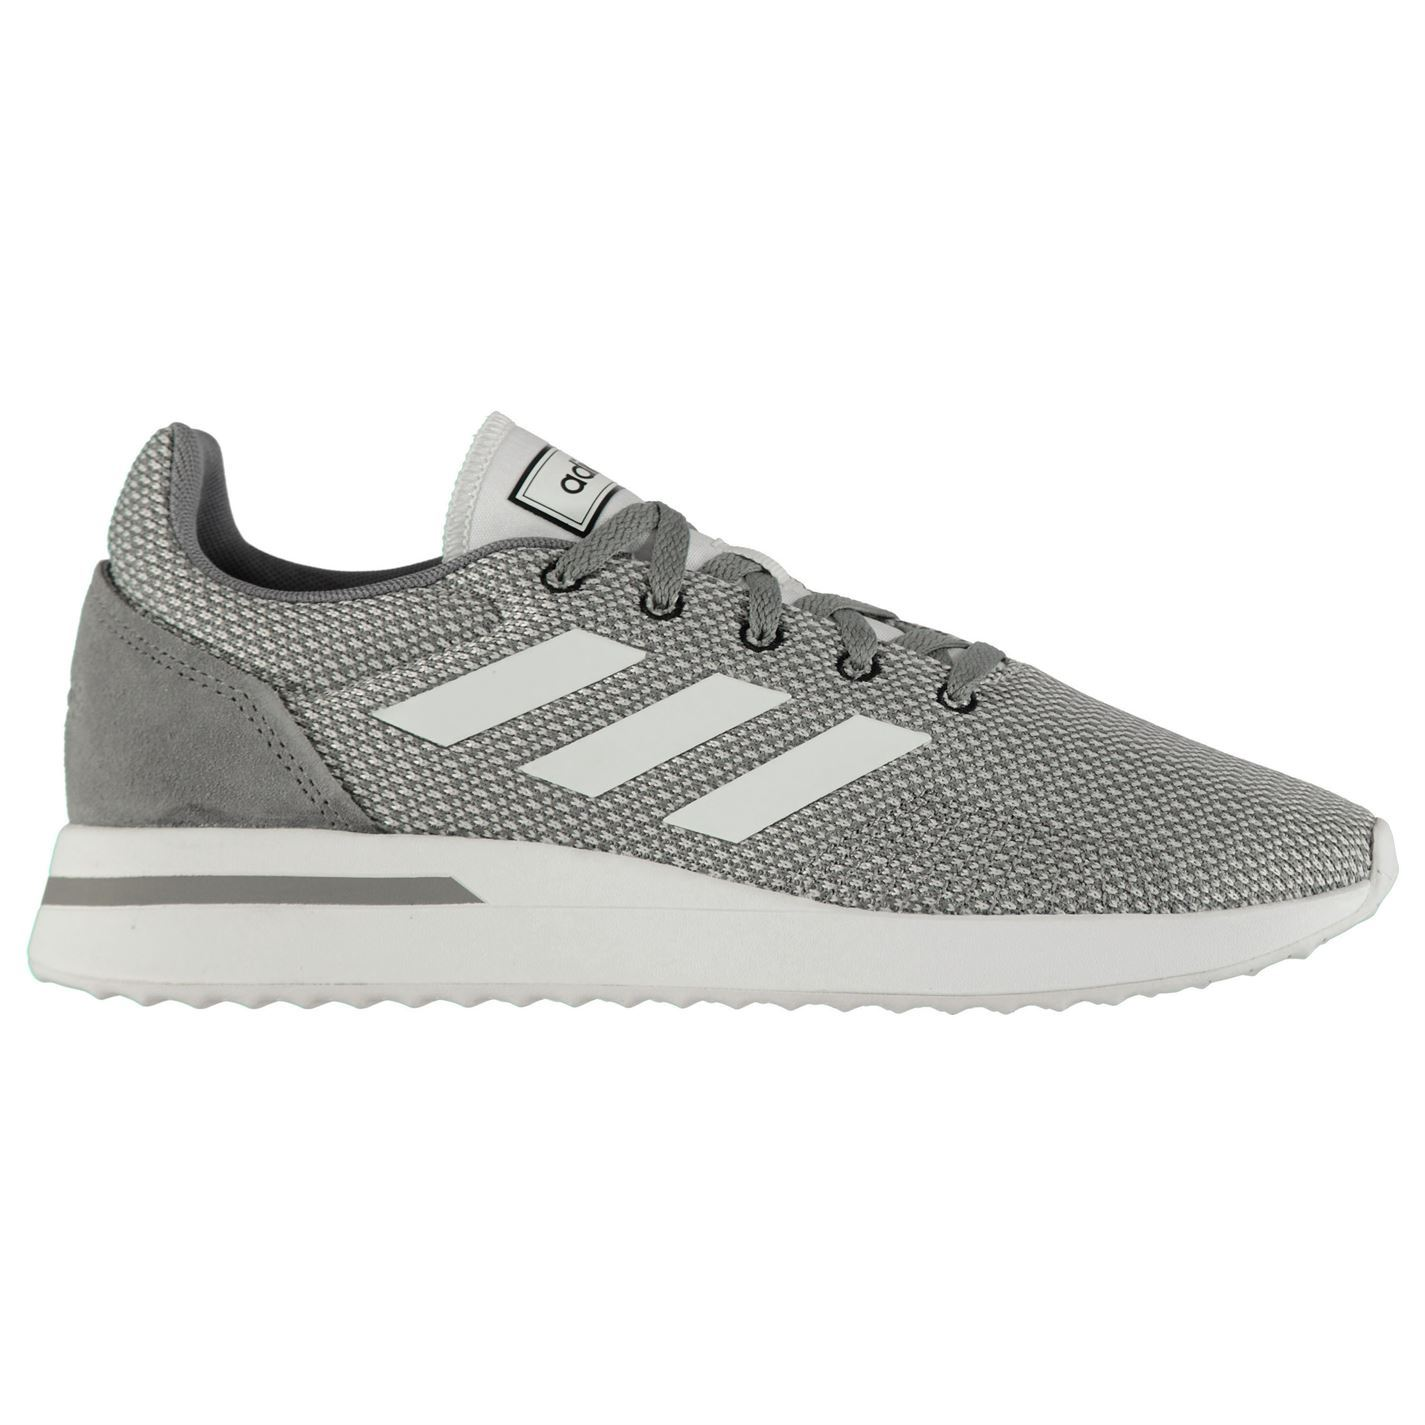 adidas Homme Run 70s Trainers Runners Lace Up Knit Knitted Ortholite Suede Stripe